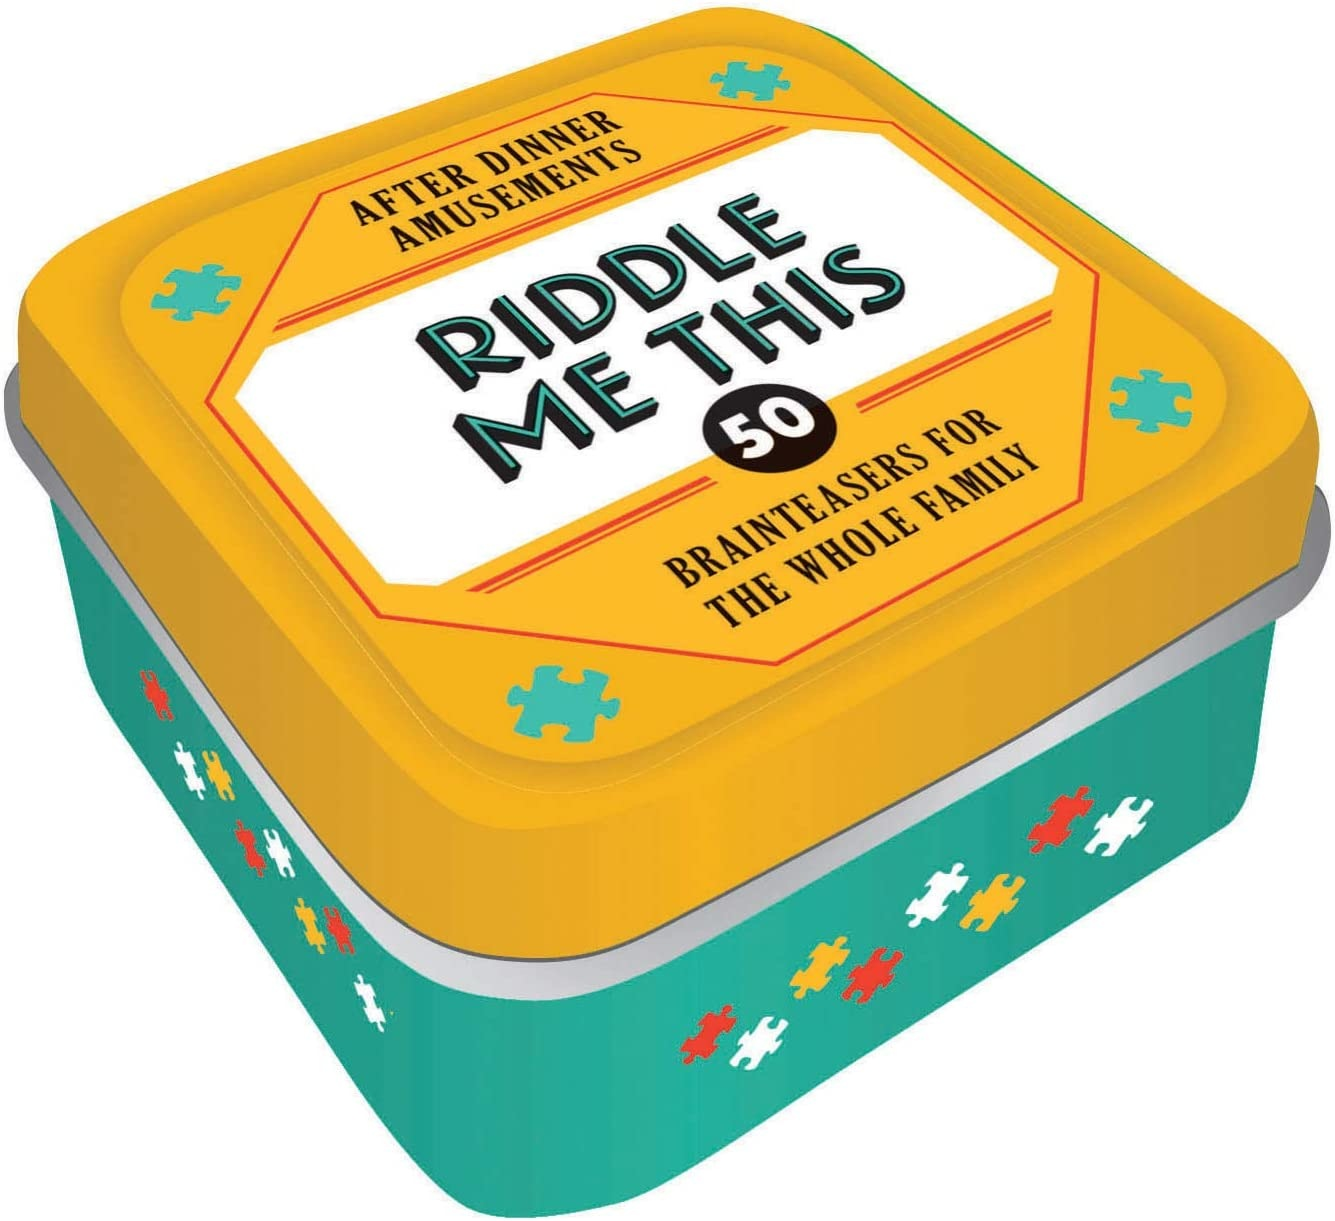 HACHETTE/CHRONICLE/MUDPUPPY AFTER DINNER: RIDDLE ME THIS